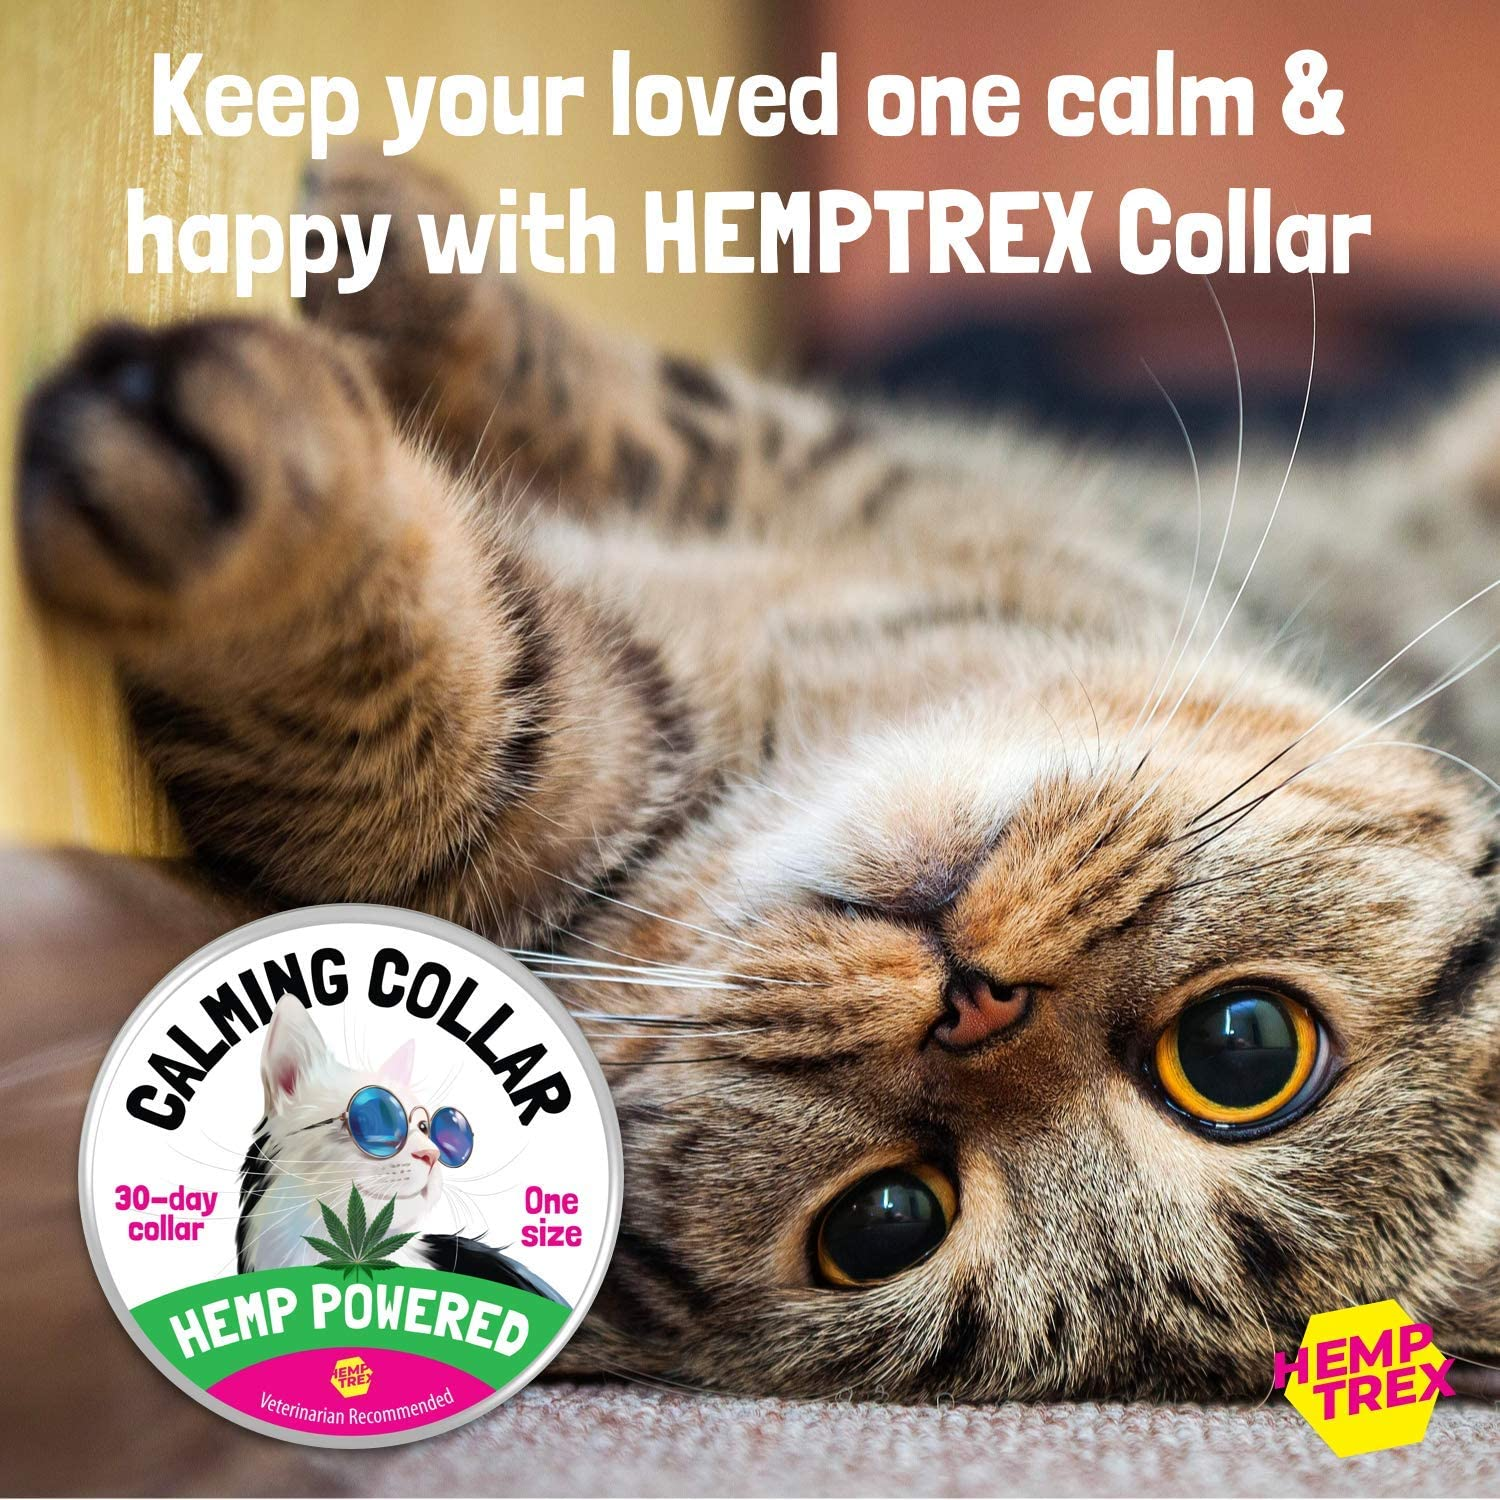 Calming Collar for Cats and Kittens with Hemp- Reduce Cat Anxiety, Stress with Natural Pheromones - Waterproof and Adjustable - Up to 15 Inch Fits - 30-Day Long-Lasting